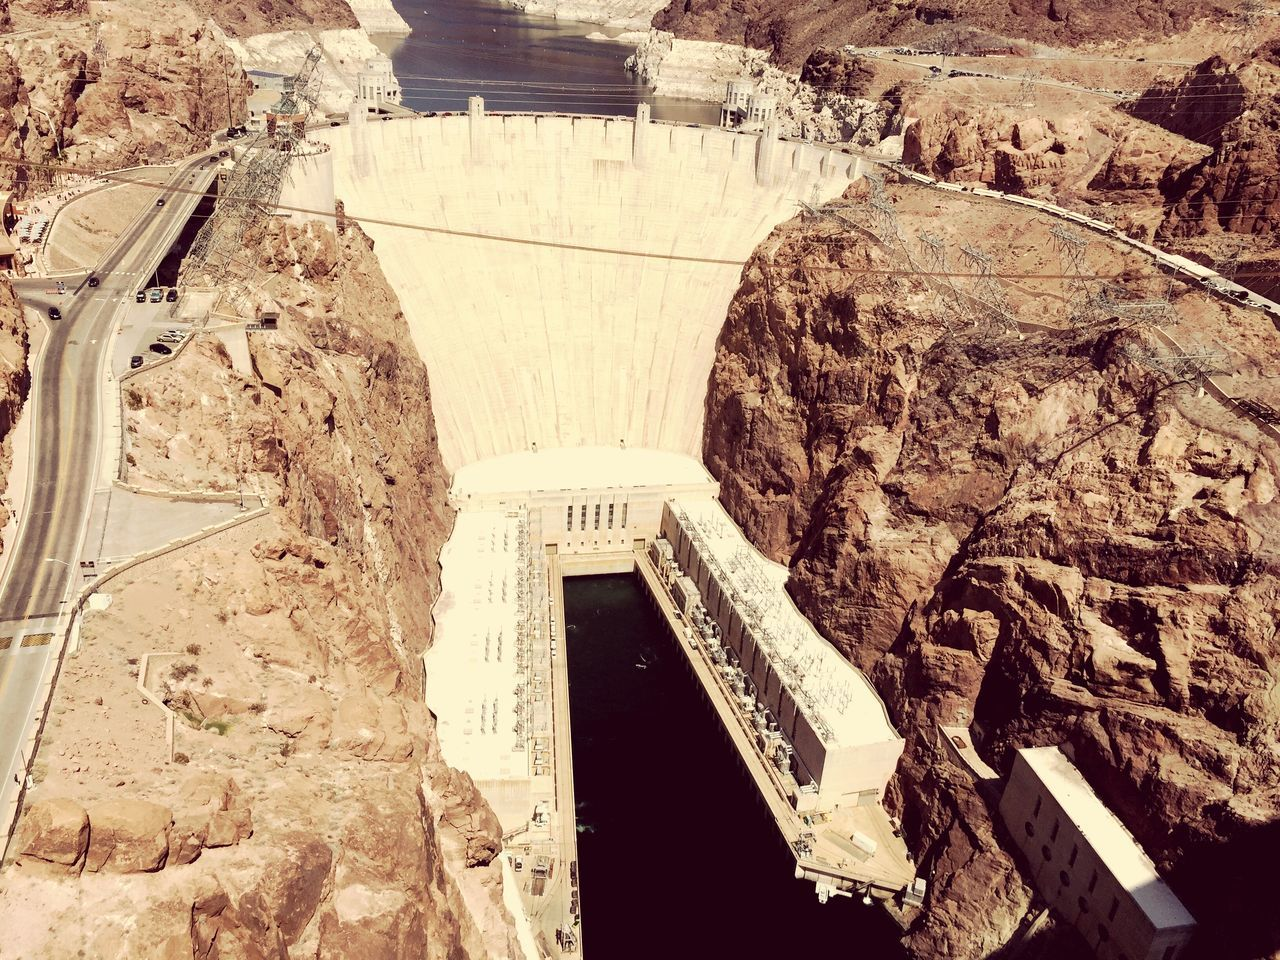 architecture, built structure, arch, dam, history, day, hydroelectric power, no people, architectural column, travel, travel destinations, outdoors, nature, ancient civilization